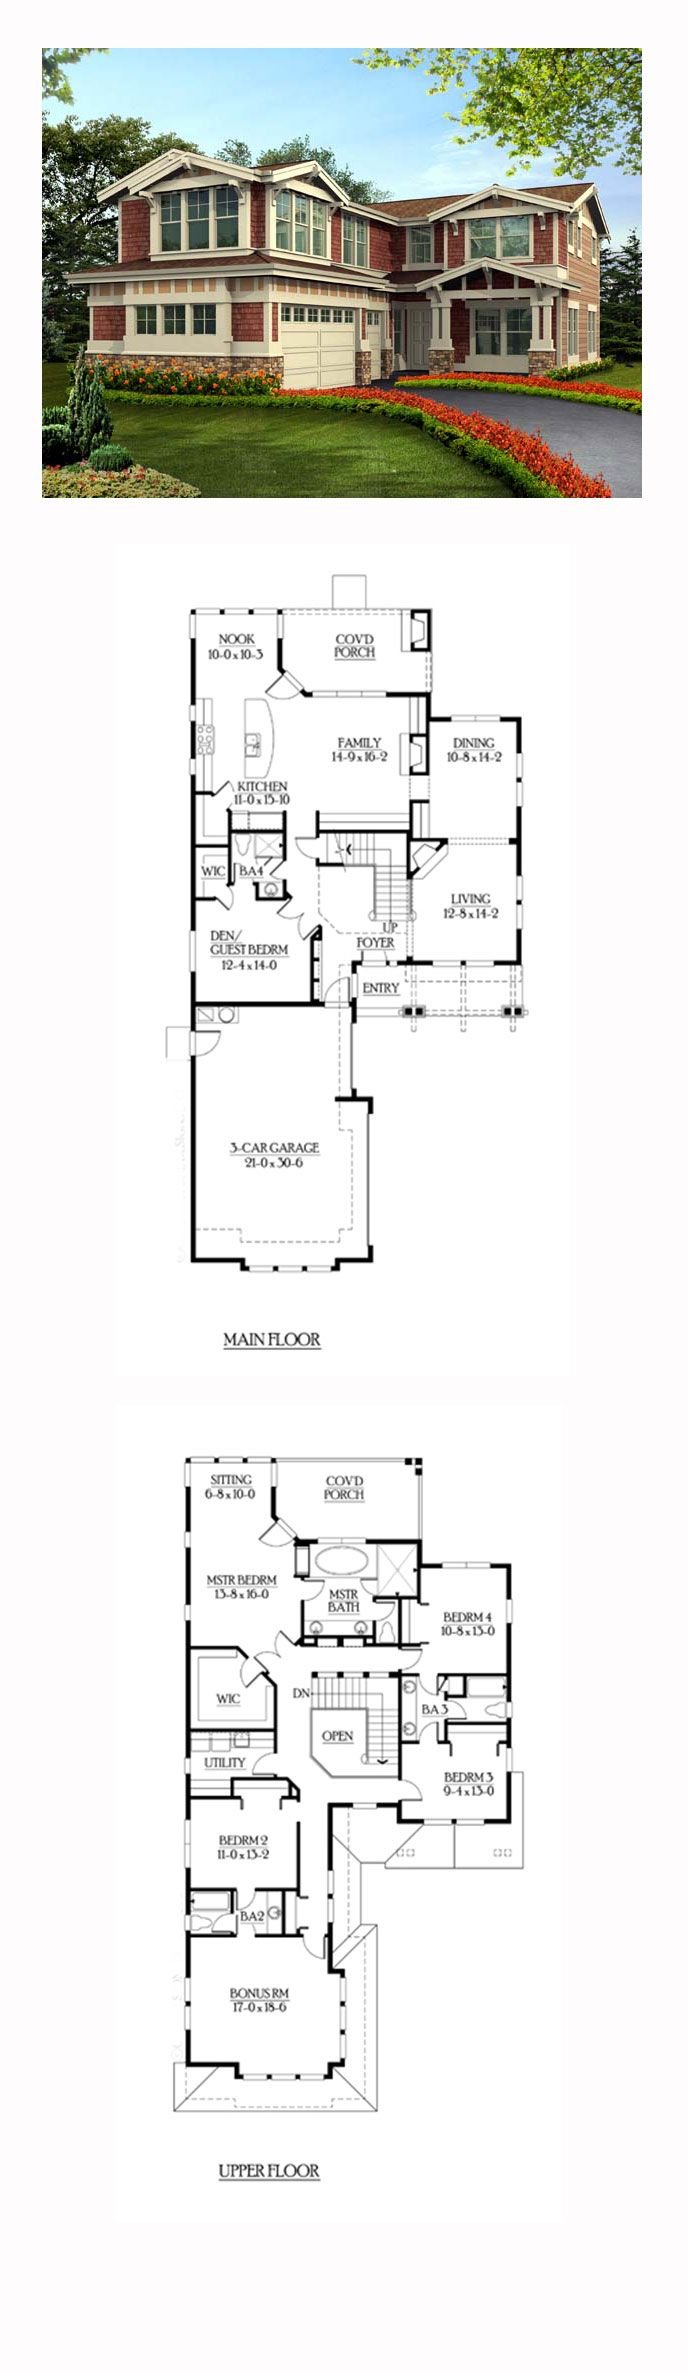 delightful my cool house plans #3: Shingle Style COOL House Plan ID: chp-39816 | Total Living Area: 3416